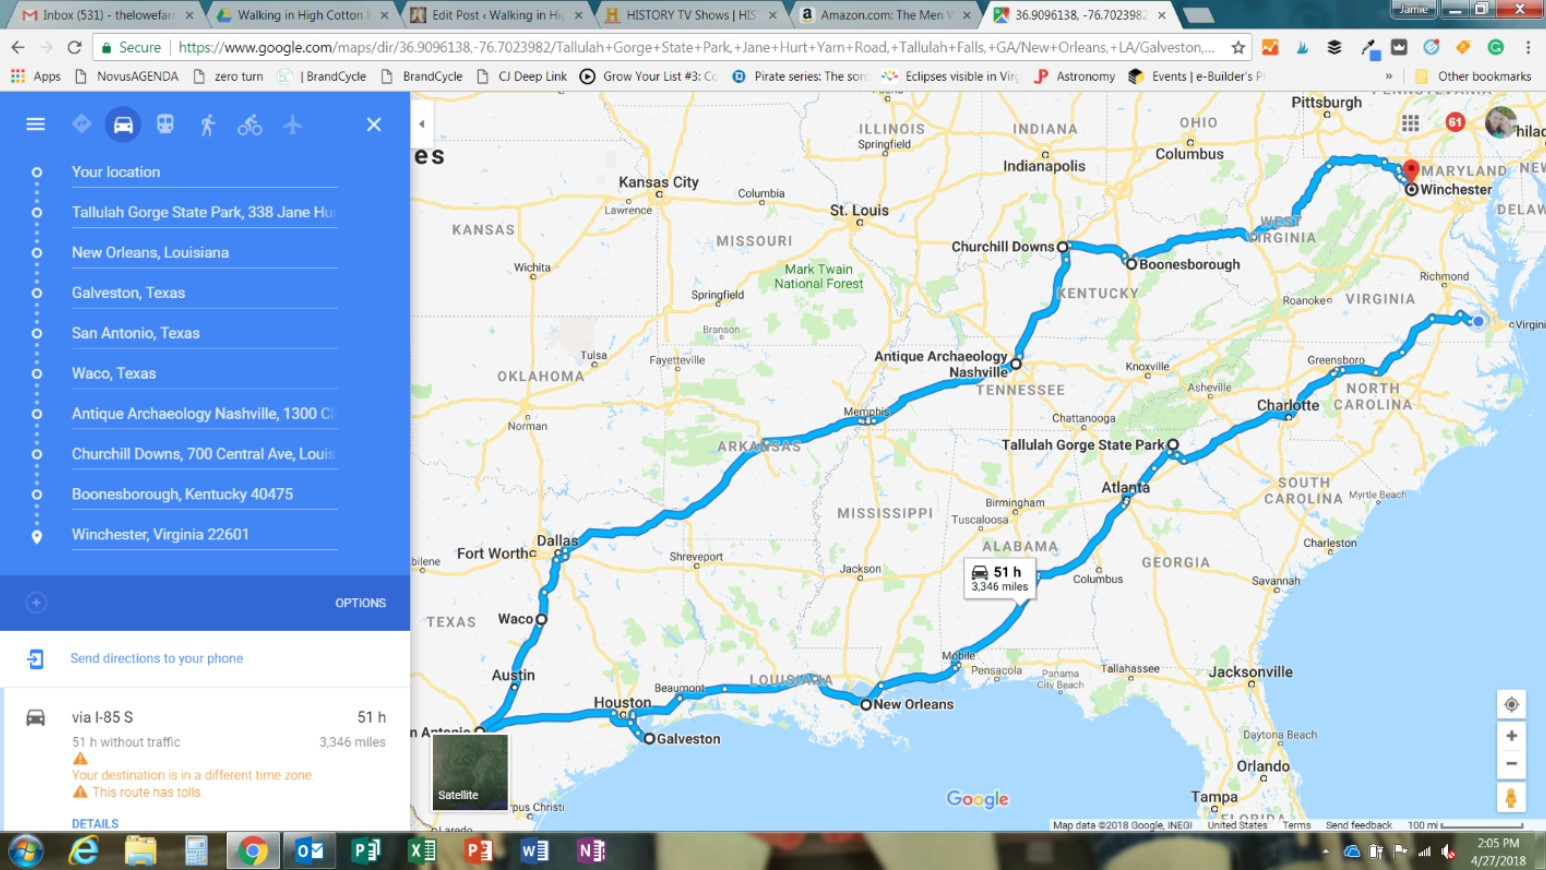 Using google maps to lay out directions for a flexible family road trip